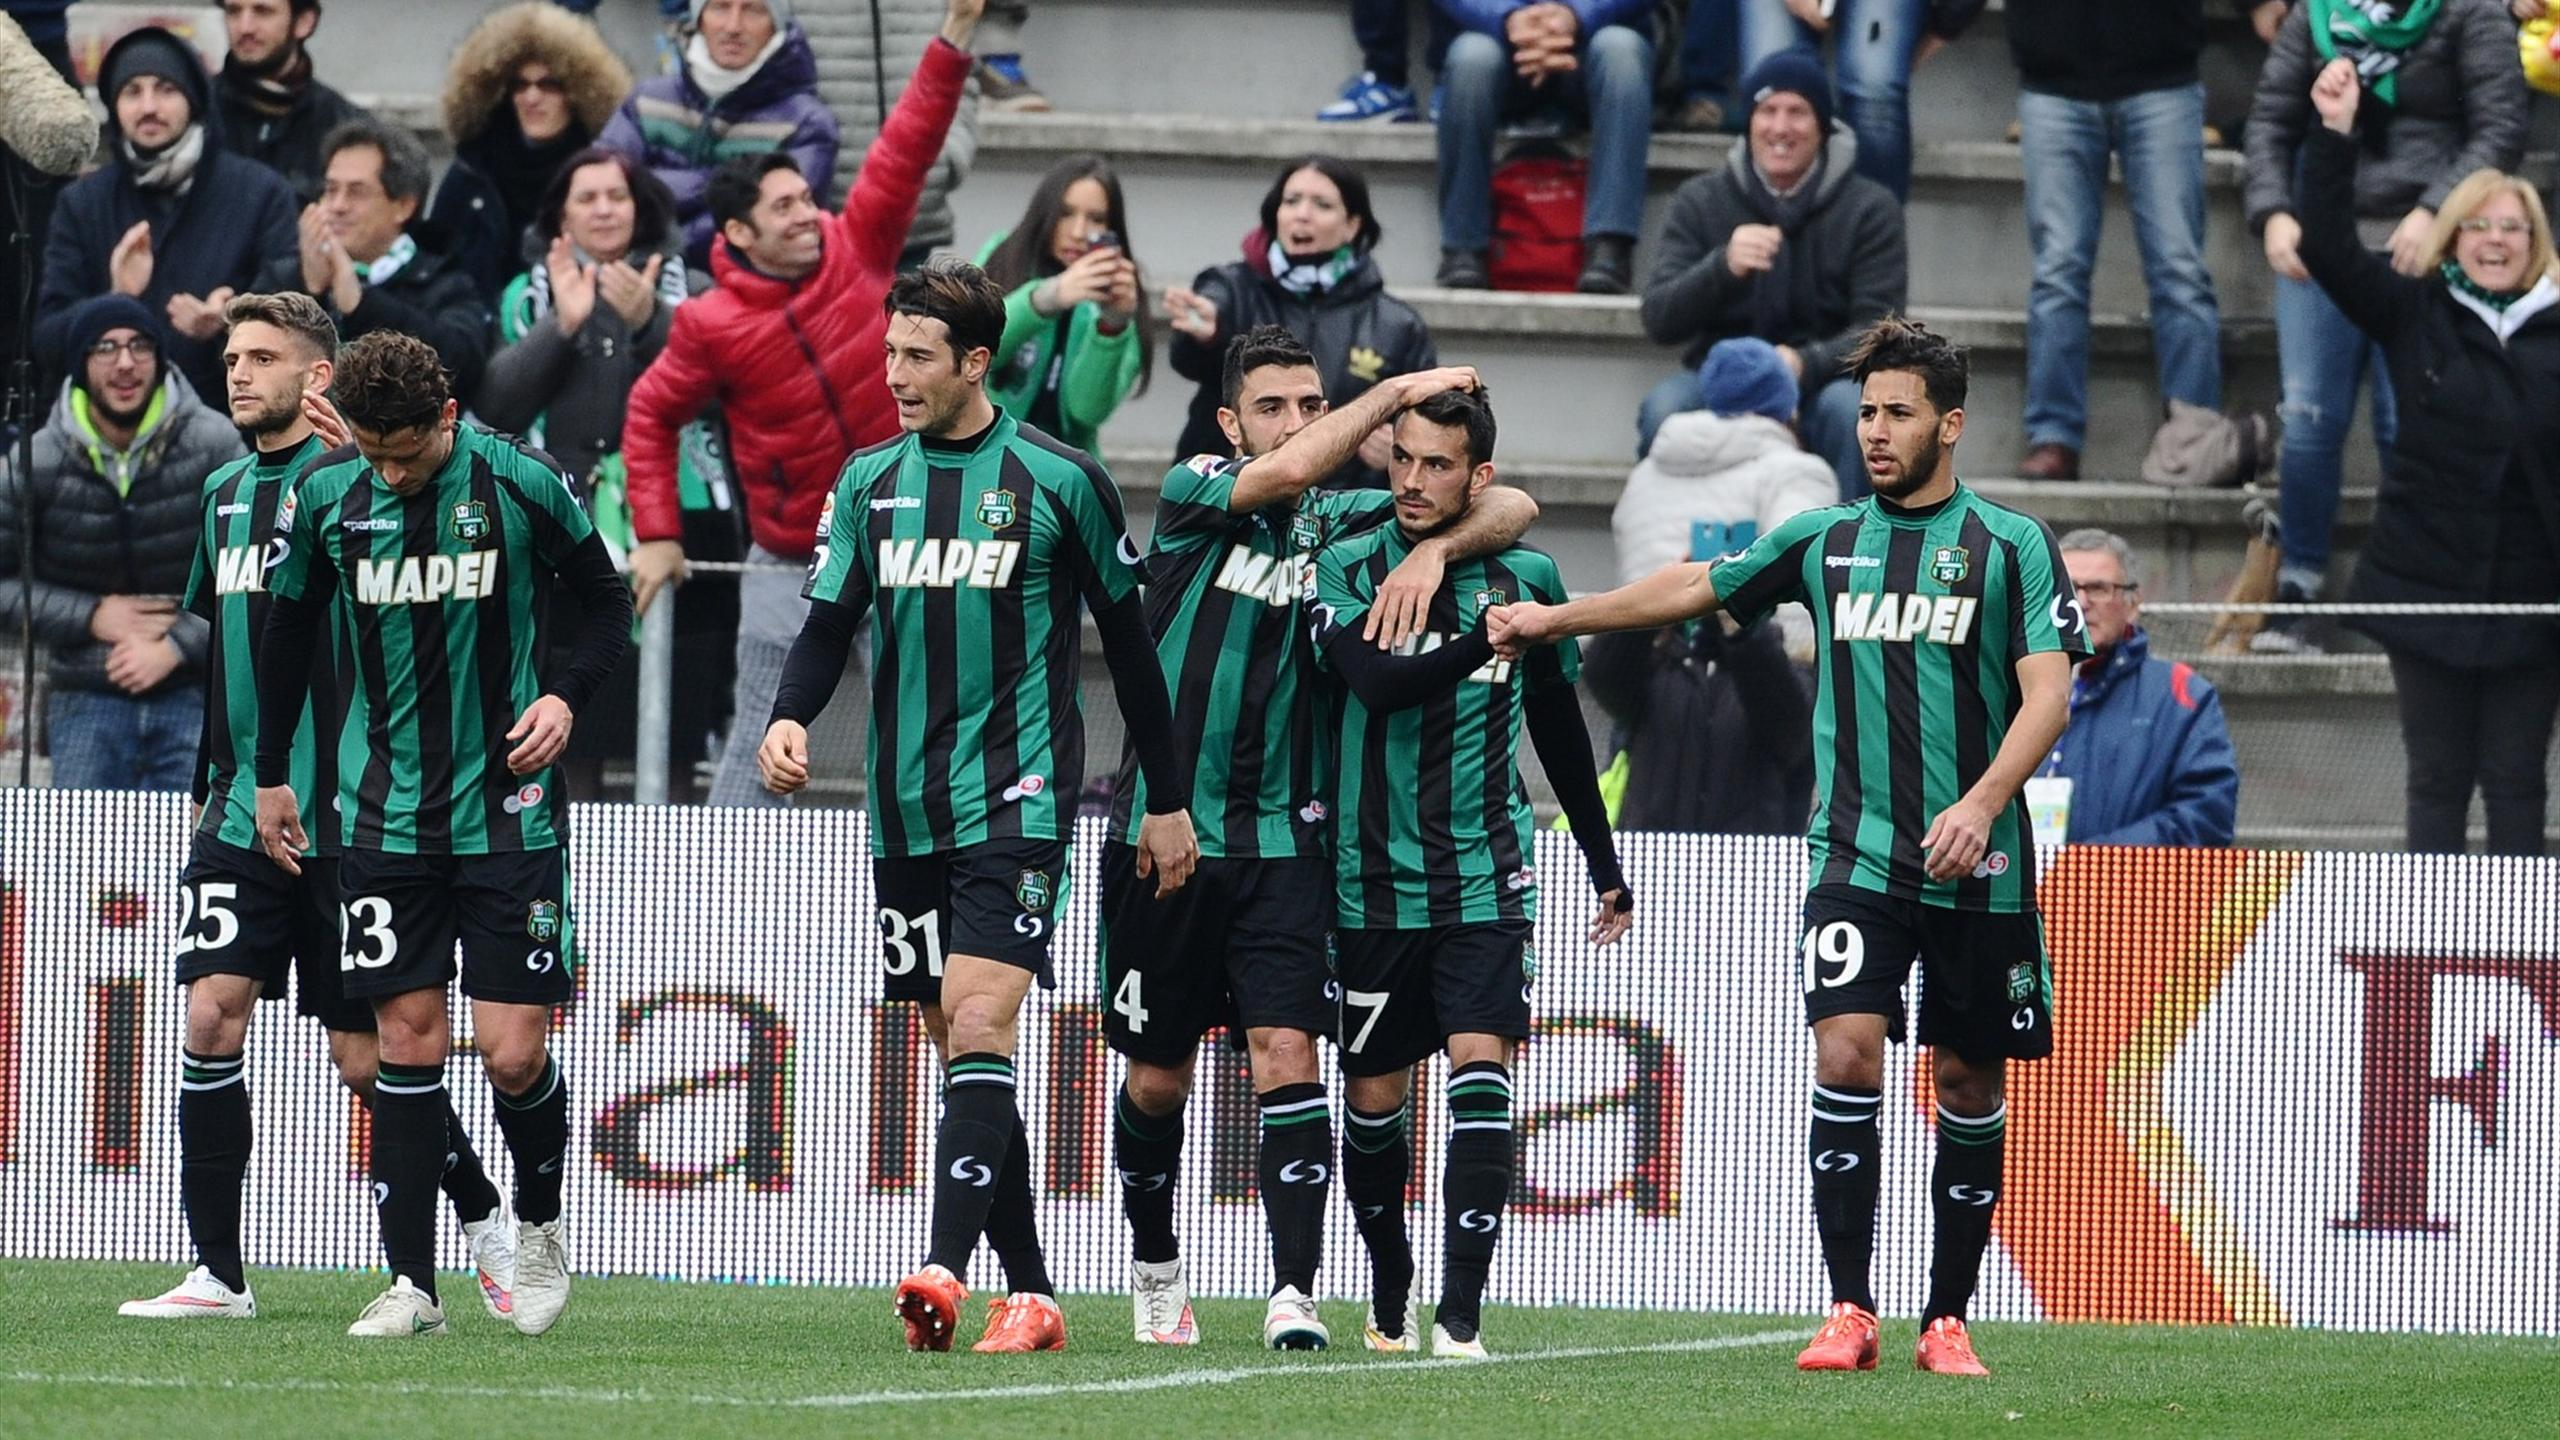 Video: Sassuolo vs Parma